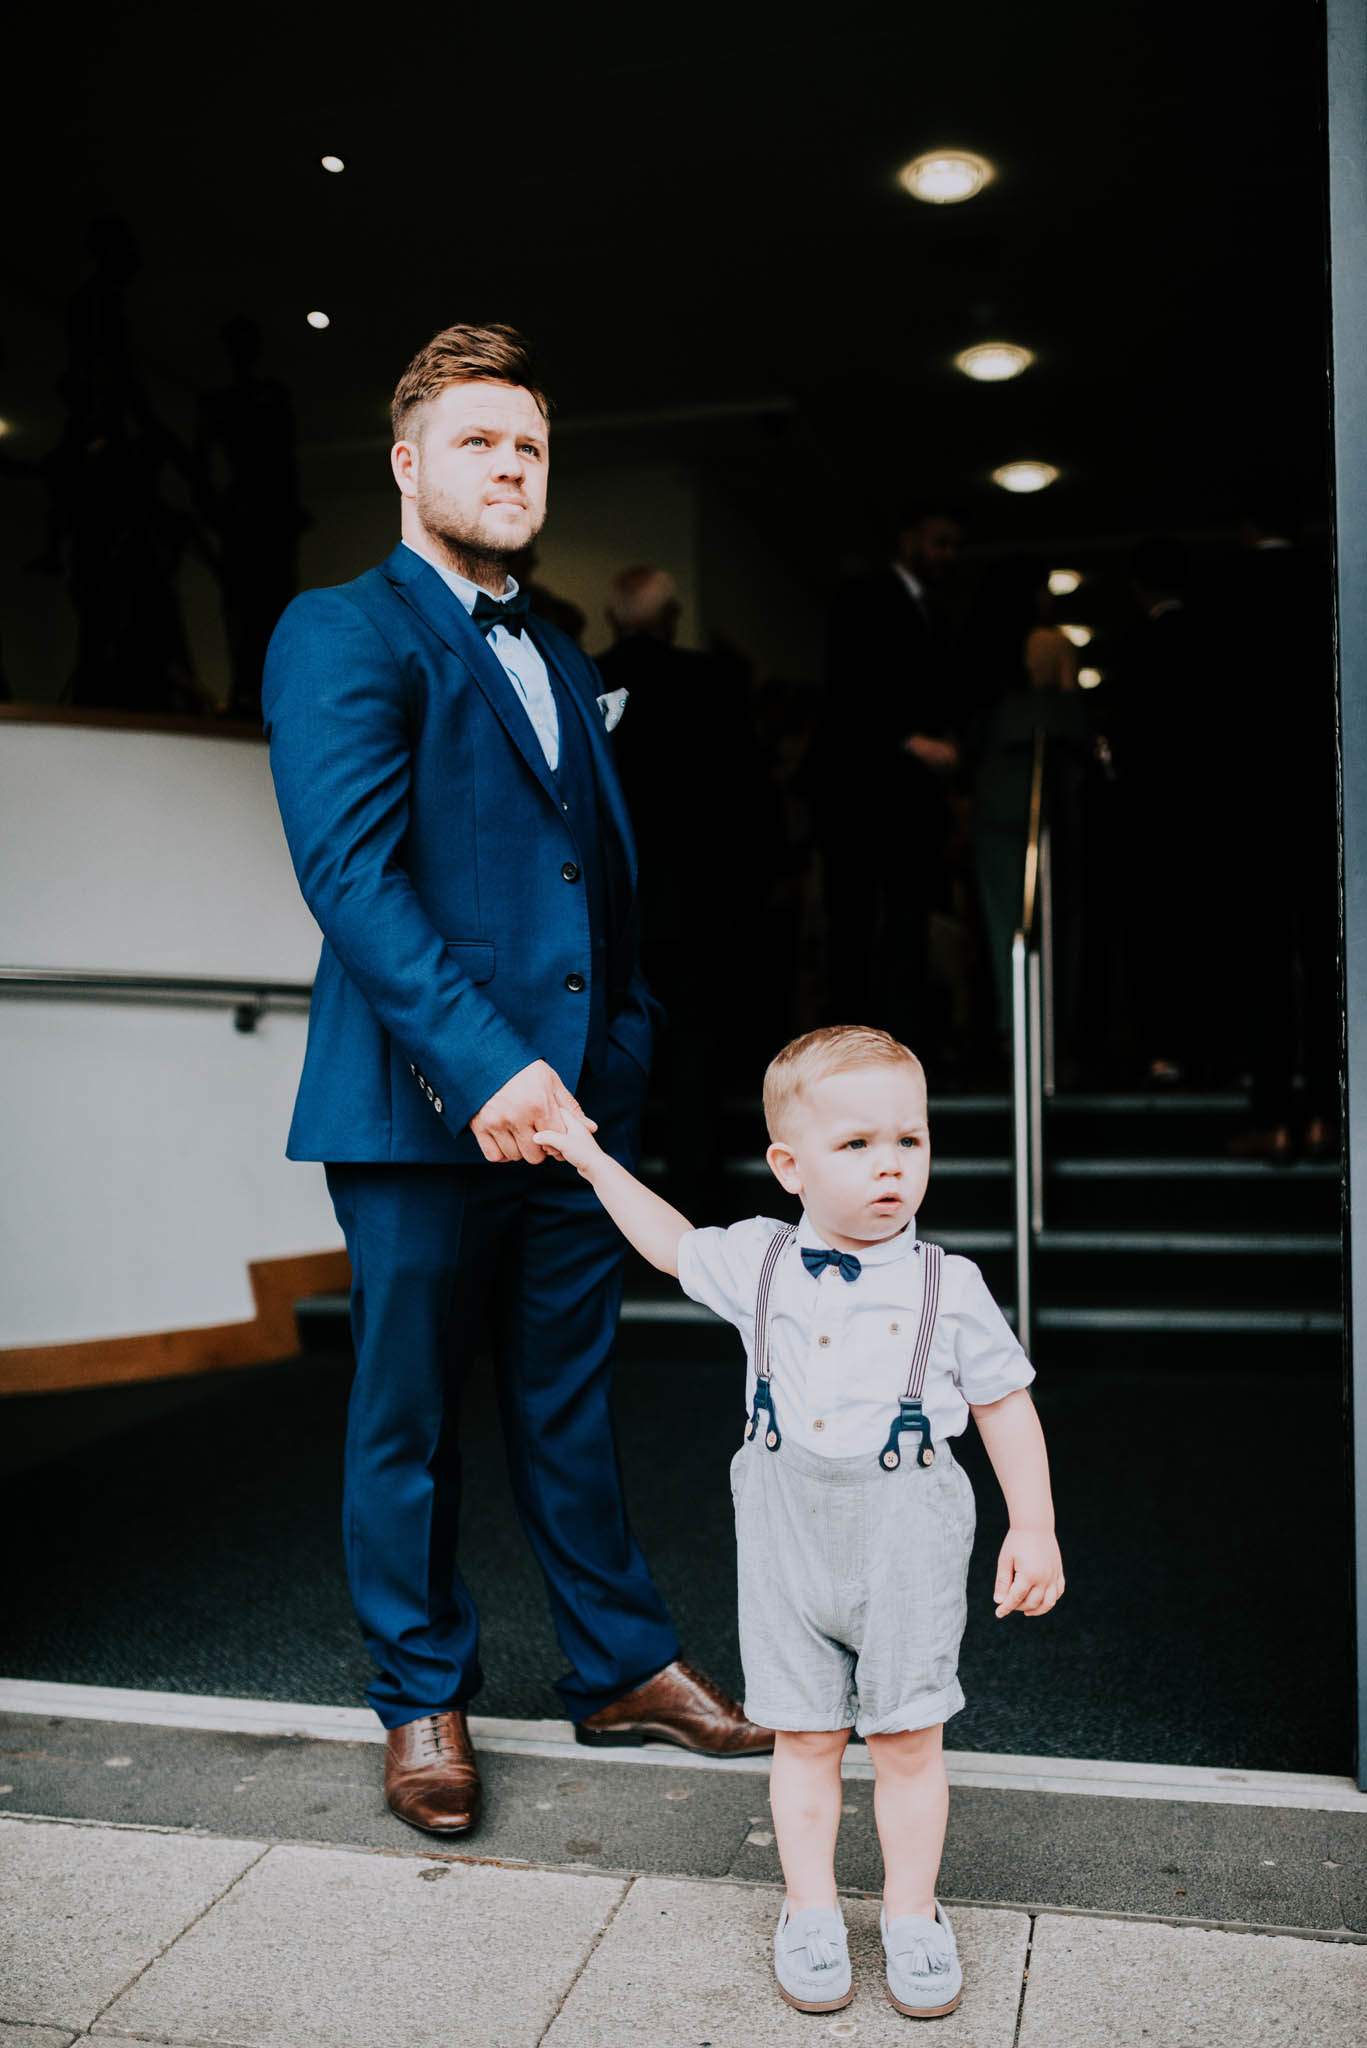 holding hands-wedding-blog-scott-stockwell-photography-end-2017.jpg